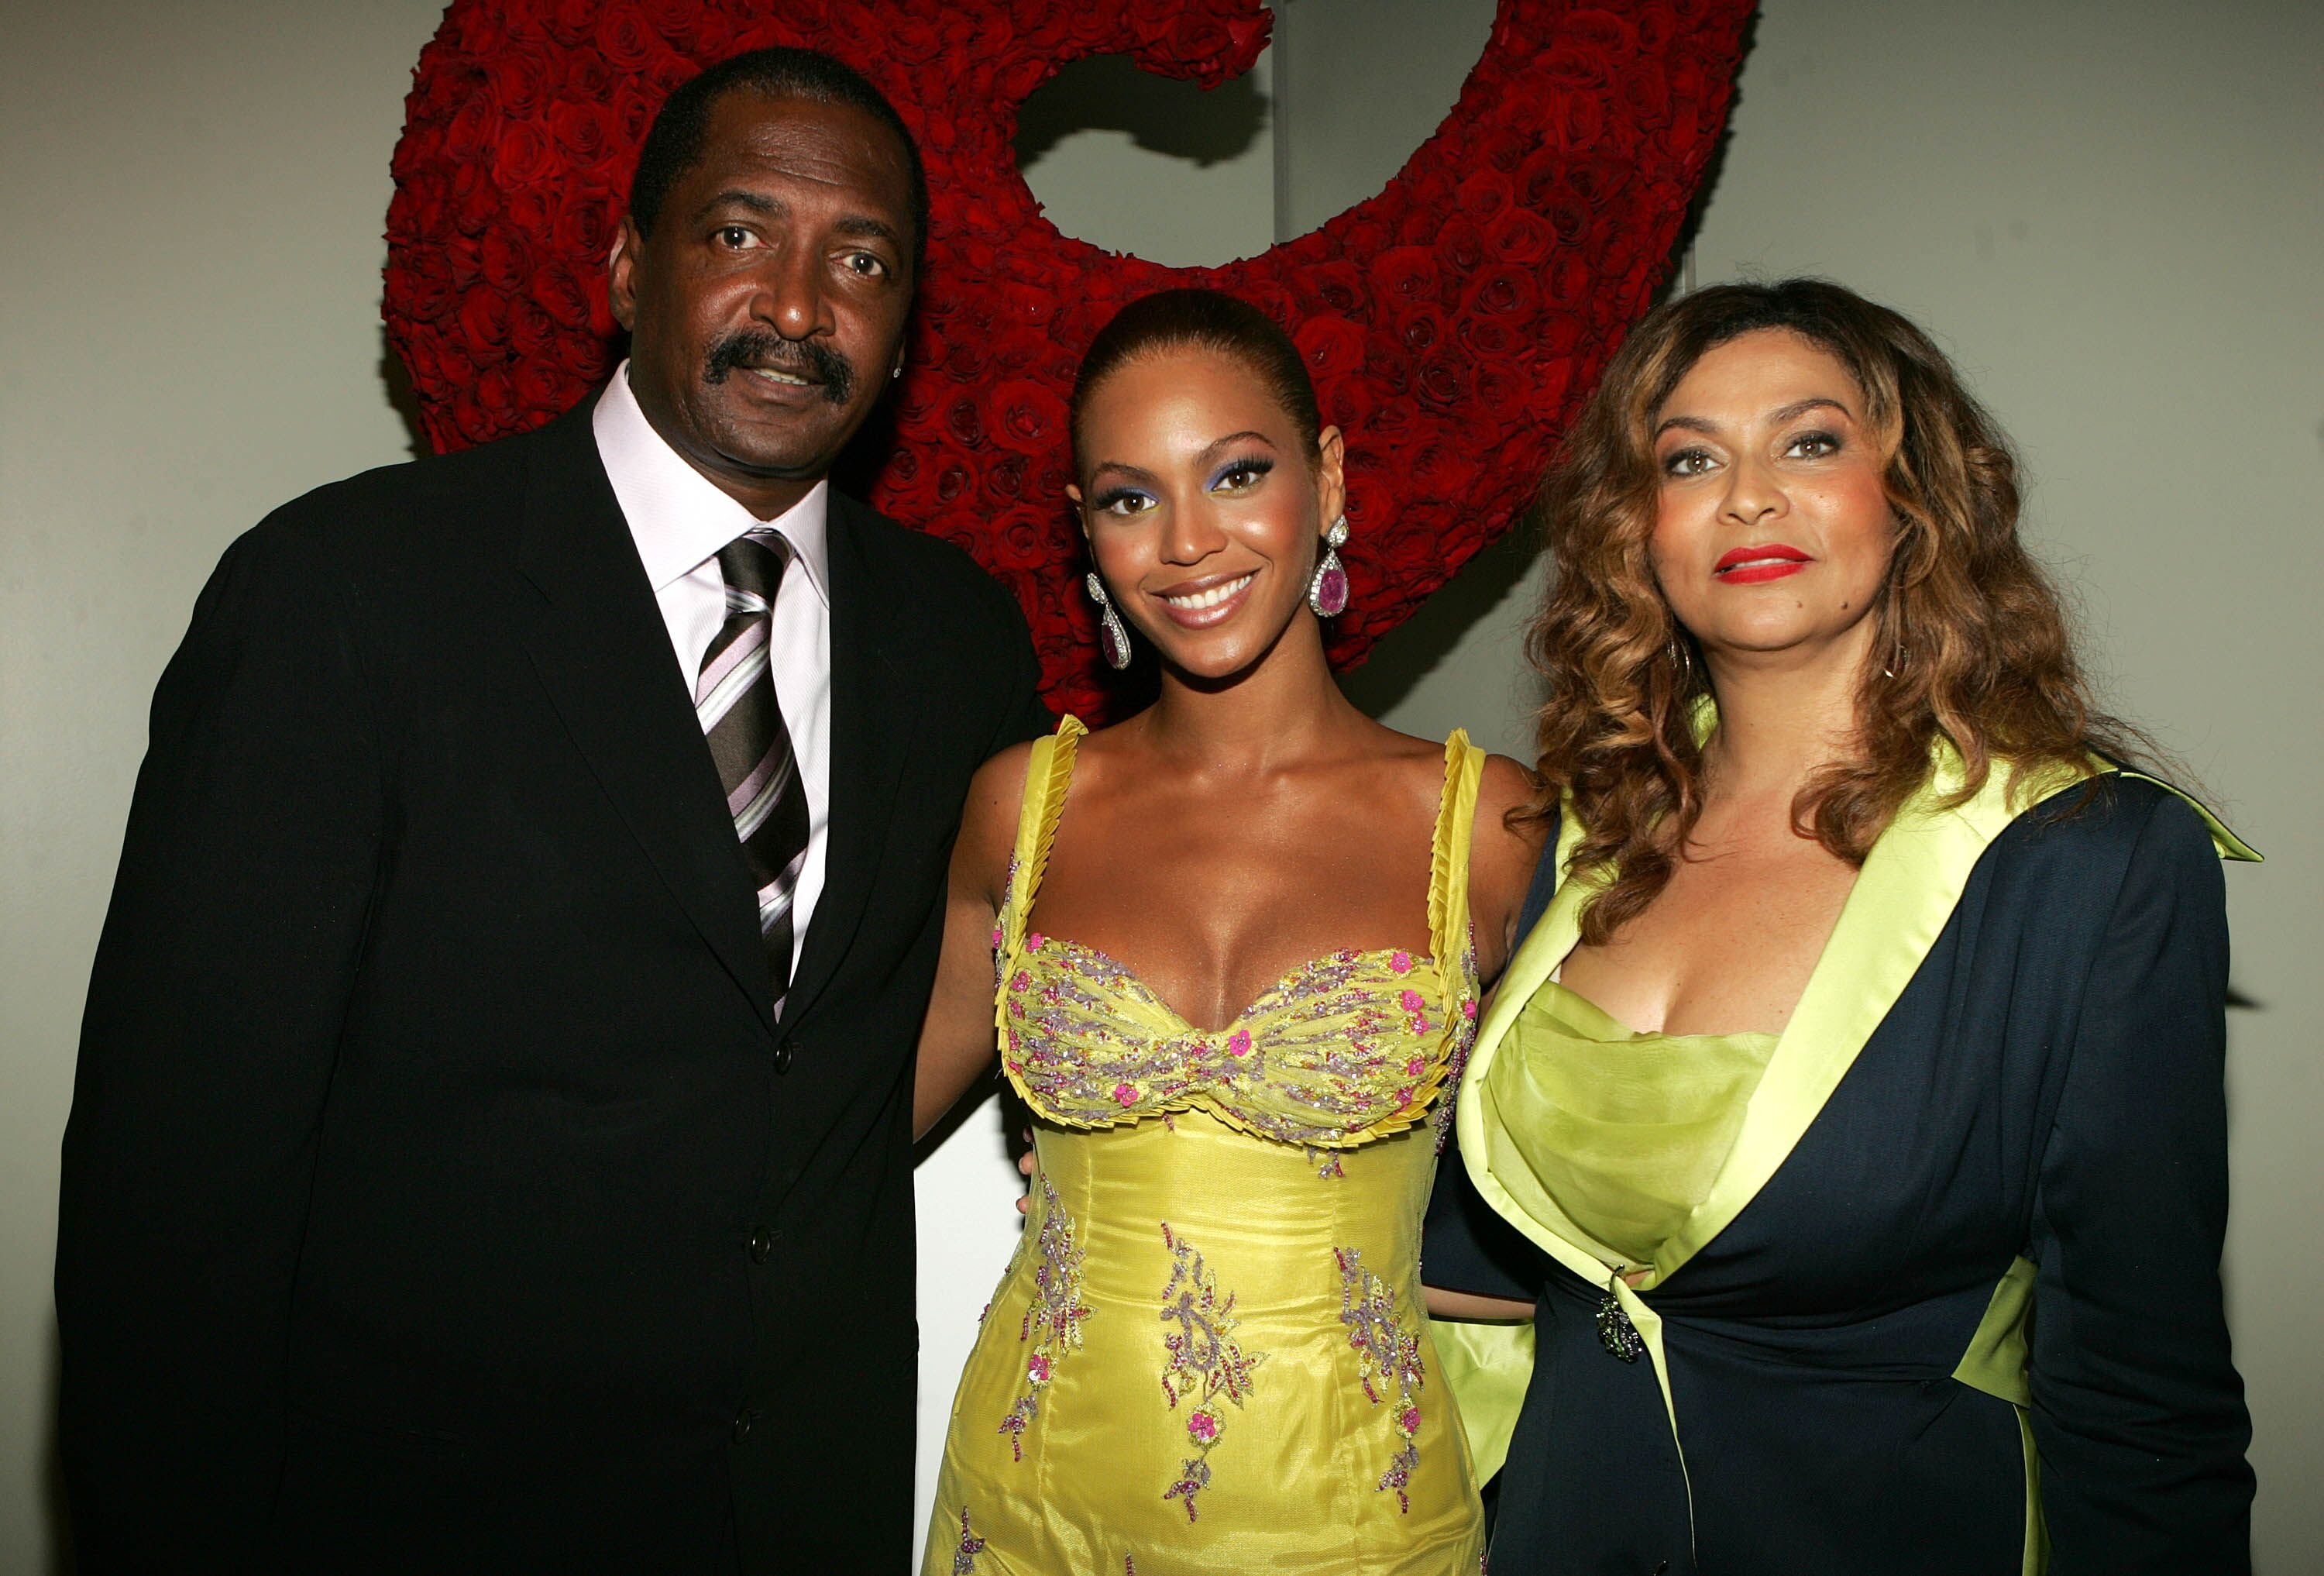 Mathew Knowles, Beyonce, and Tina Knowles-Lawson at a formal event | Source: Getty Images/GlobalImagesUkraine